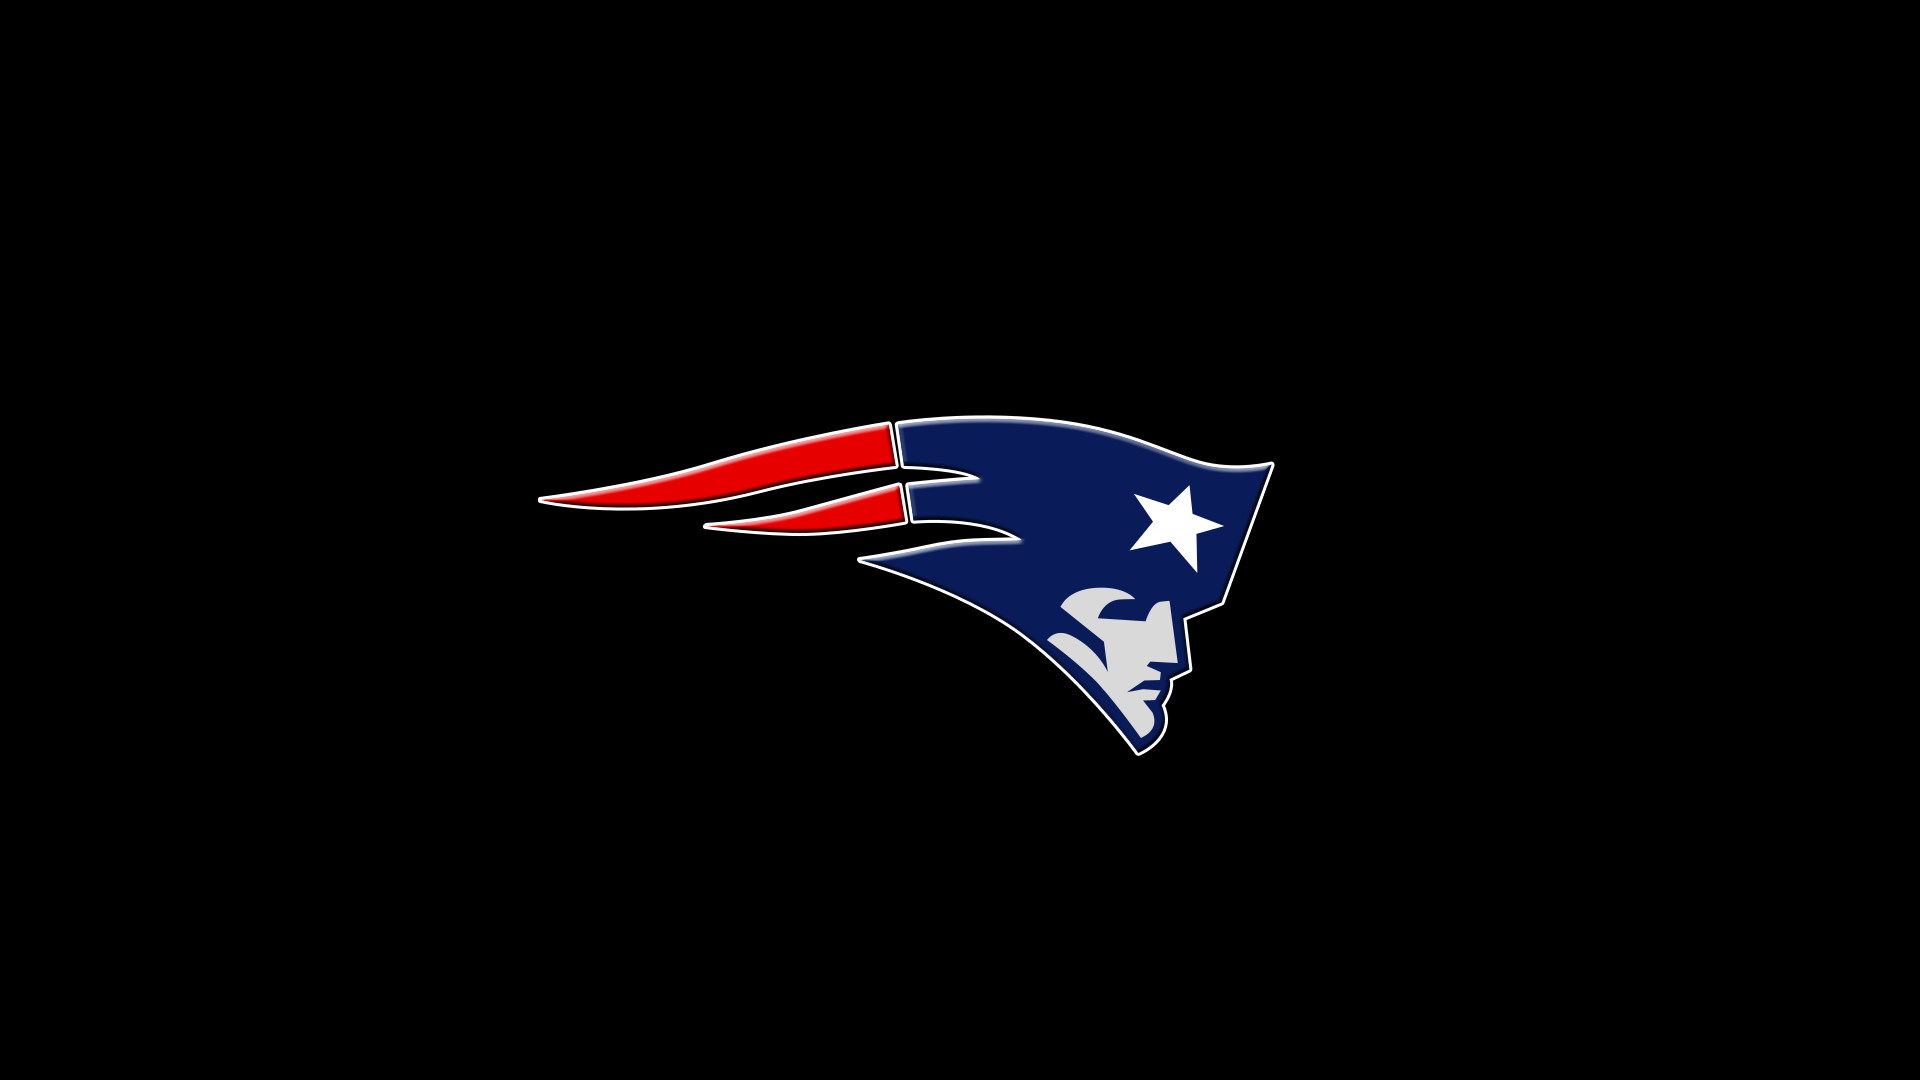 1920x1080 New England Patriots Phone Wallpaper | HD Wallpapers | Pinterest | Patriots  logo, Hd wallpaper and Wallpaper